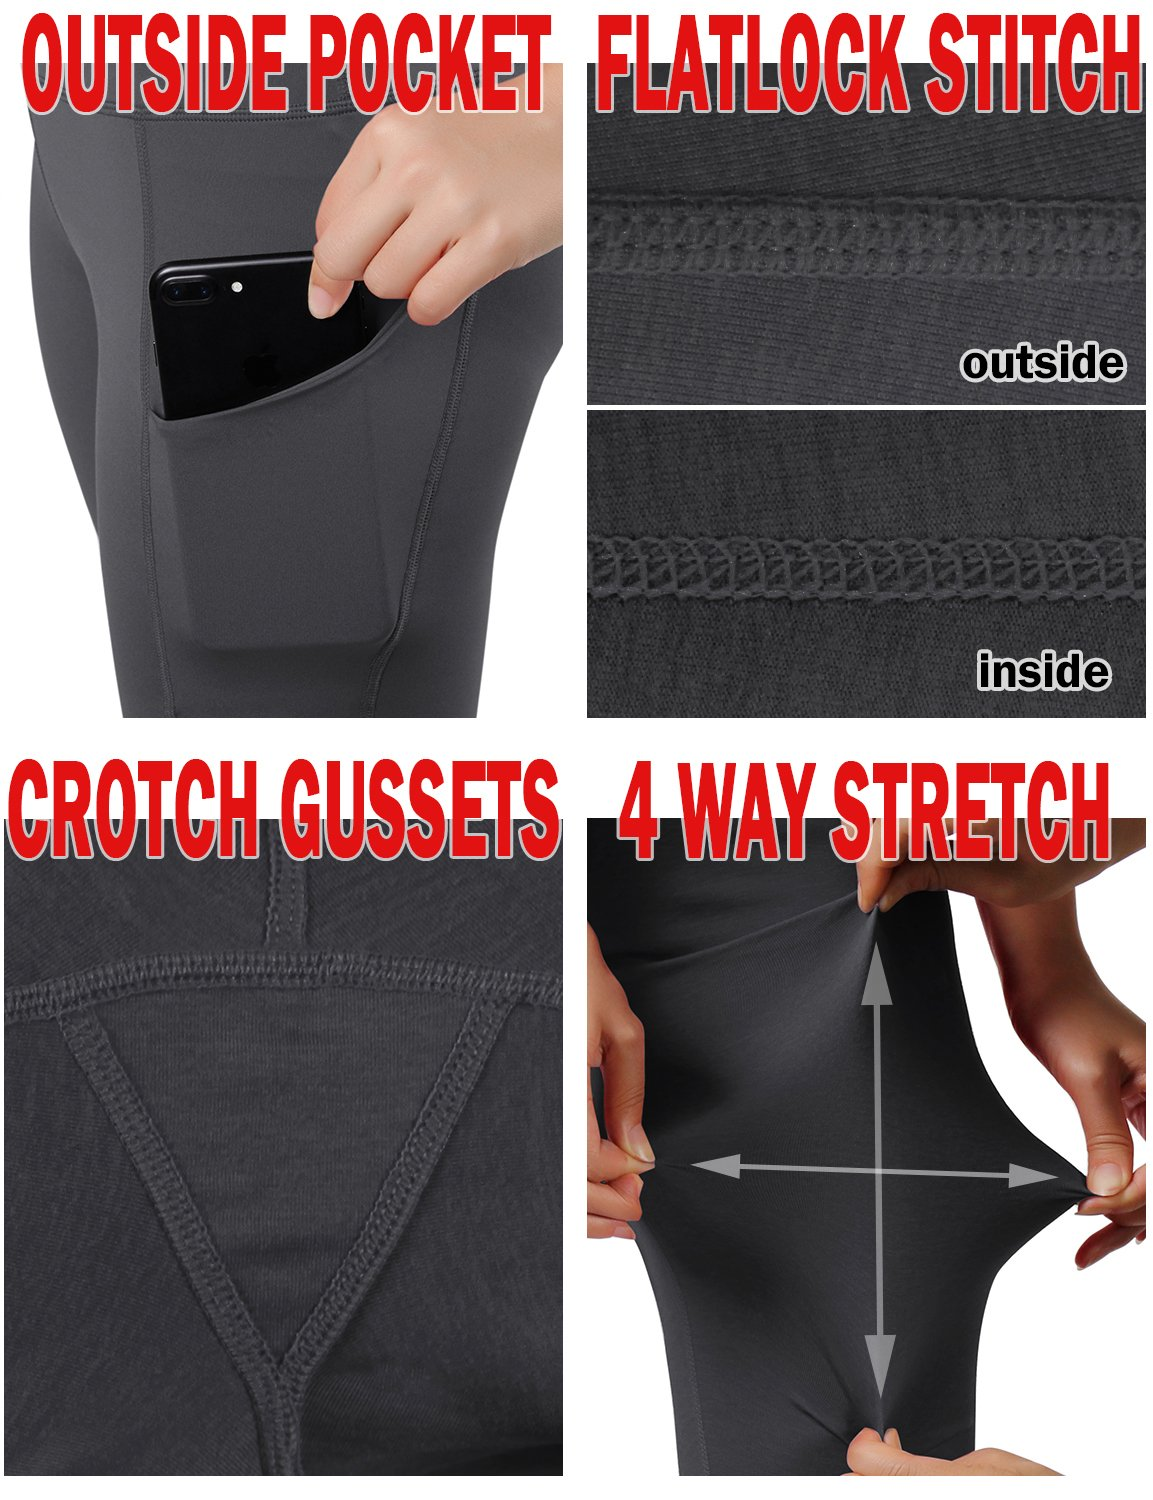 ODODOS High Waist Out Pocket Yoga Shots Tummy Control Workout Running 4 Way Stretch Yoga Shots, Gray, X-Large by ODODOS (Image #6)